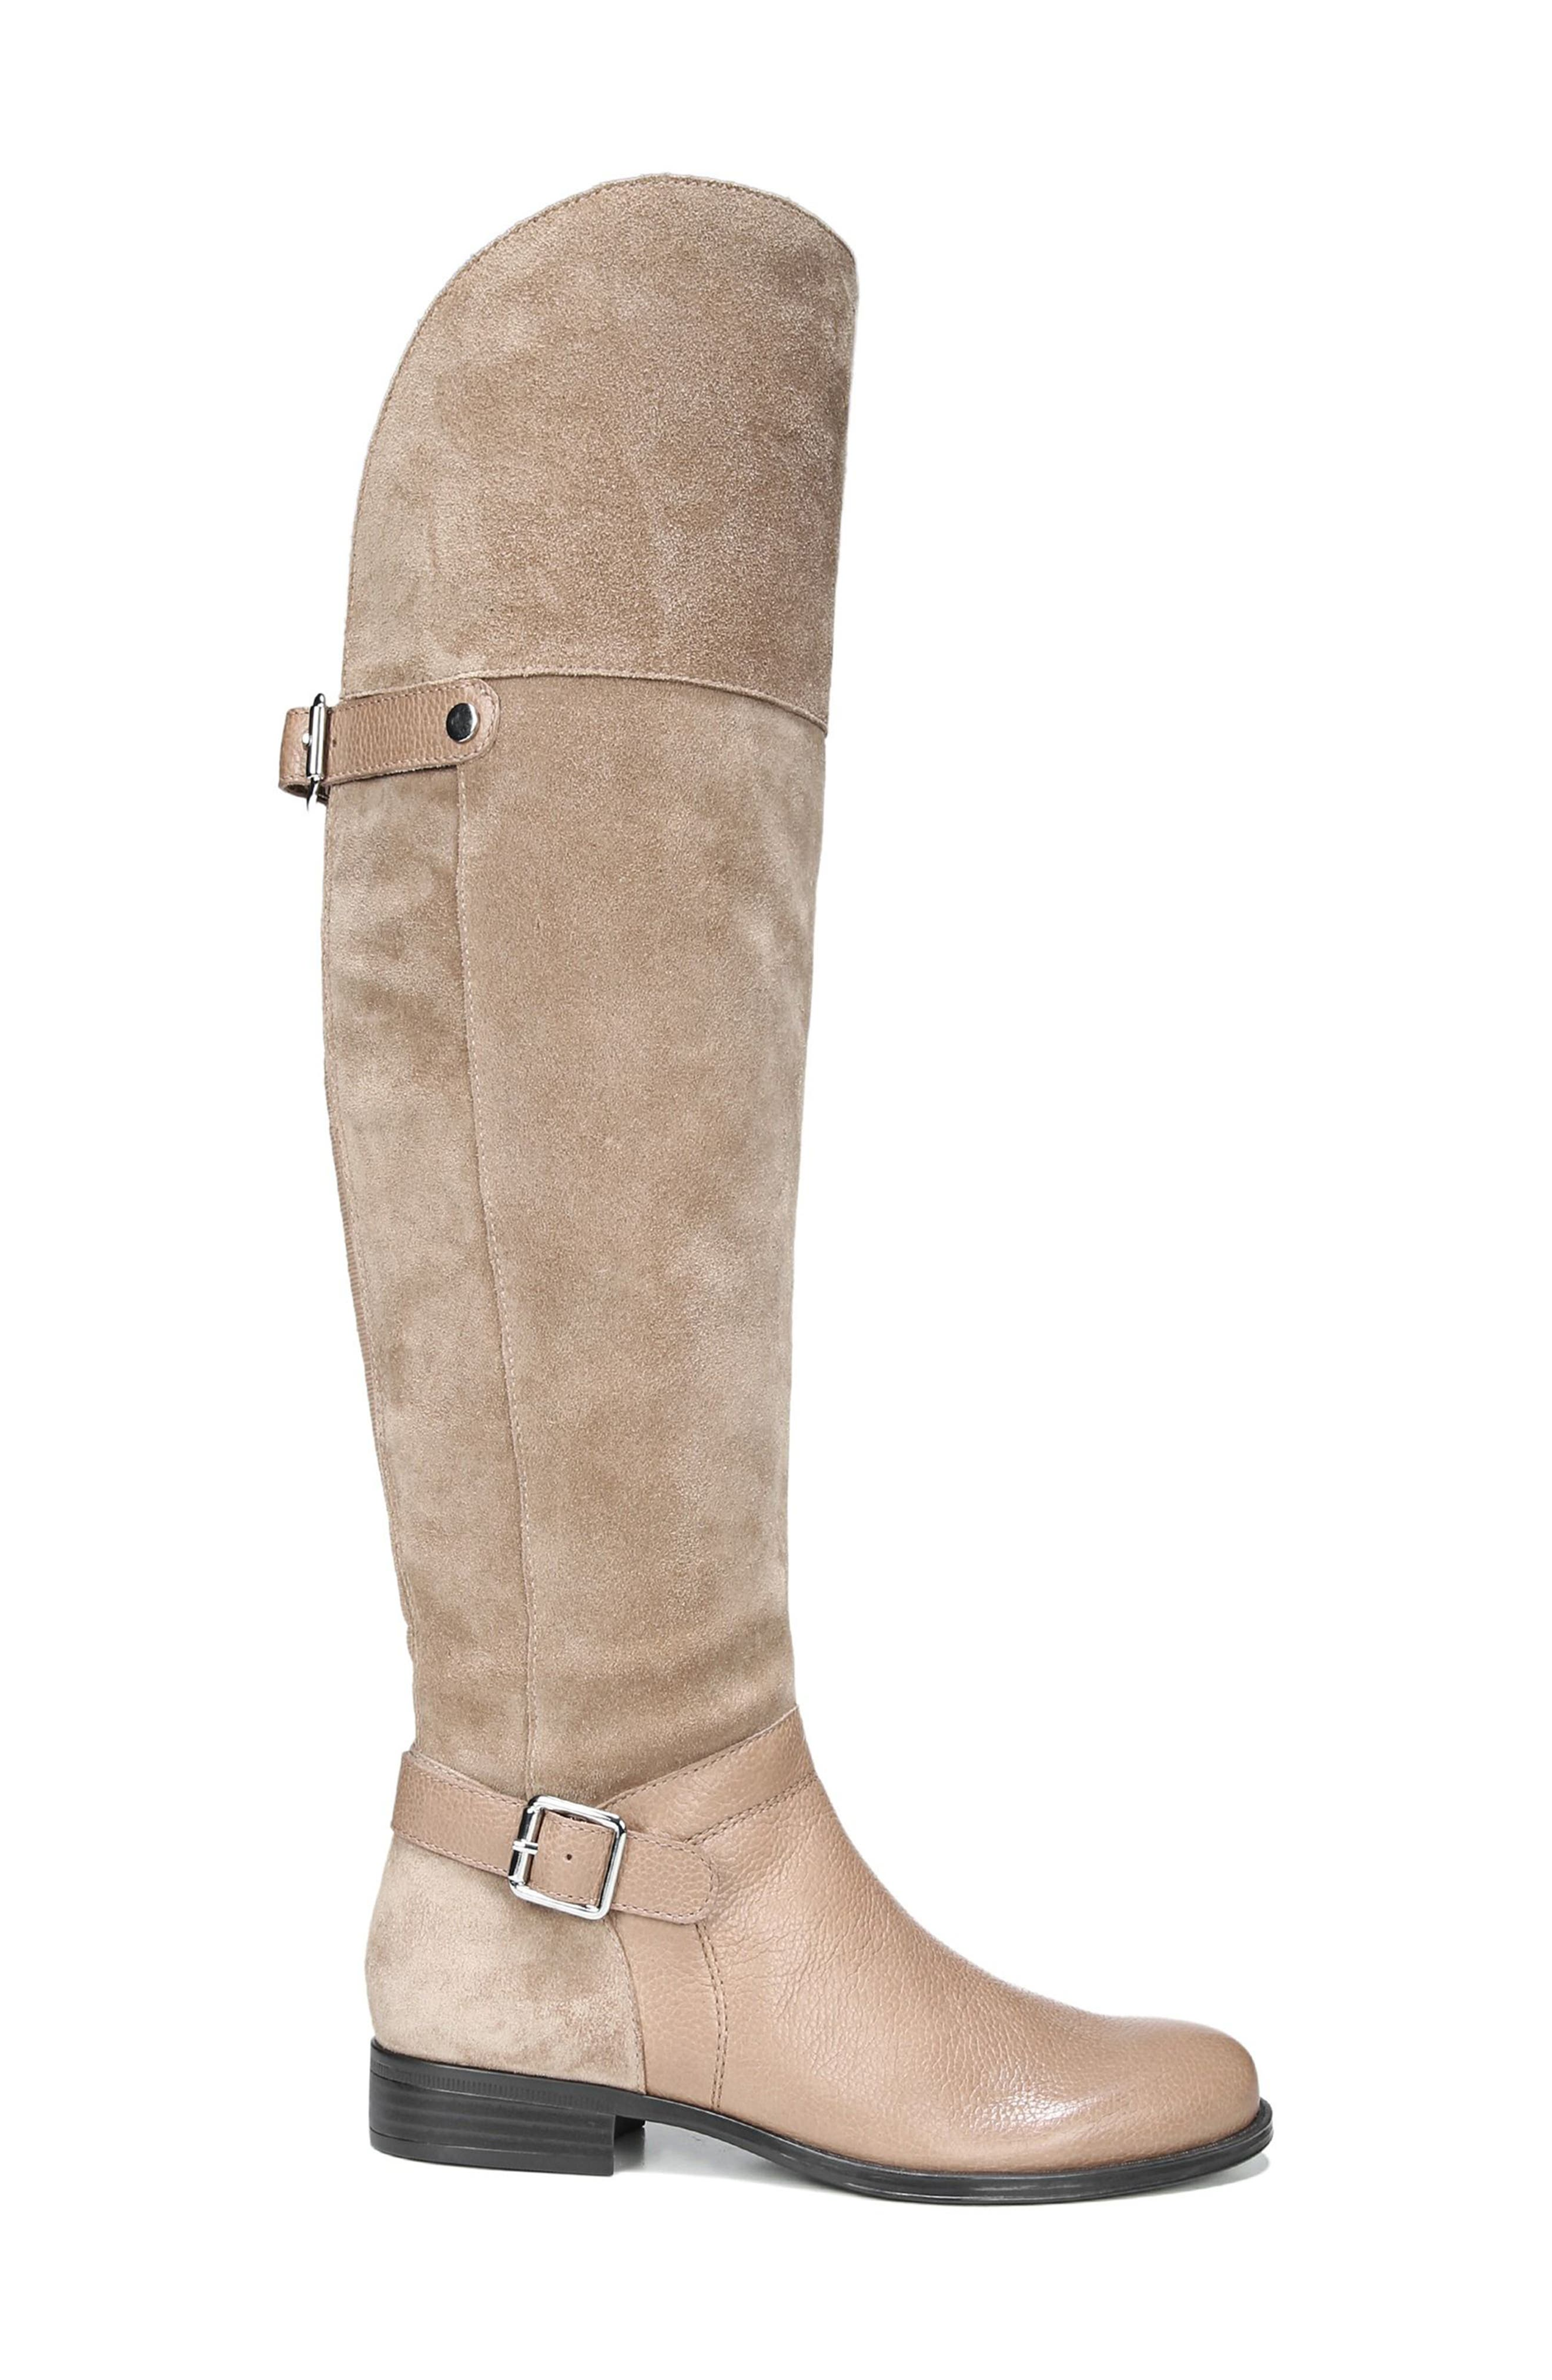 January Over the Knee High Boot,                             Alternate thumbnail 3, color,                             Beige Leather